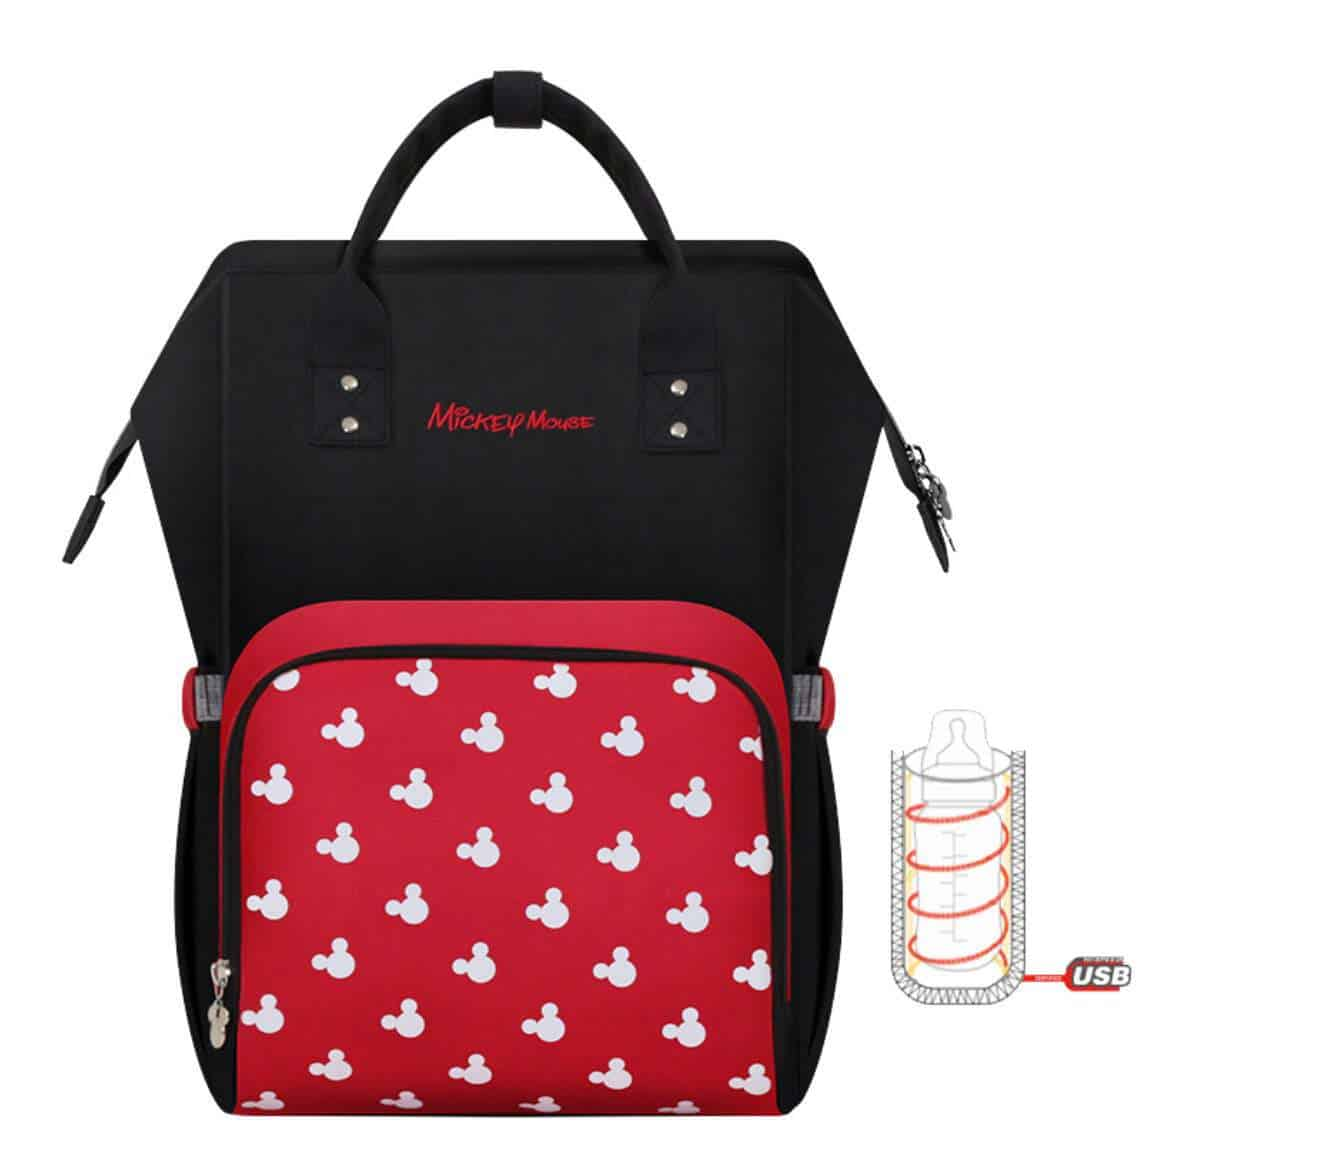 Want to know the best mom bag for Disney World? We'll let you know what to carry in it too!